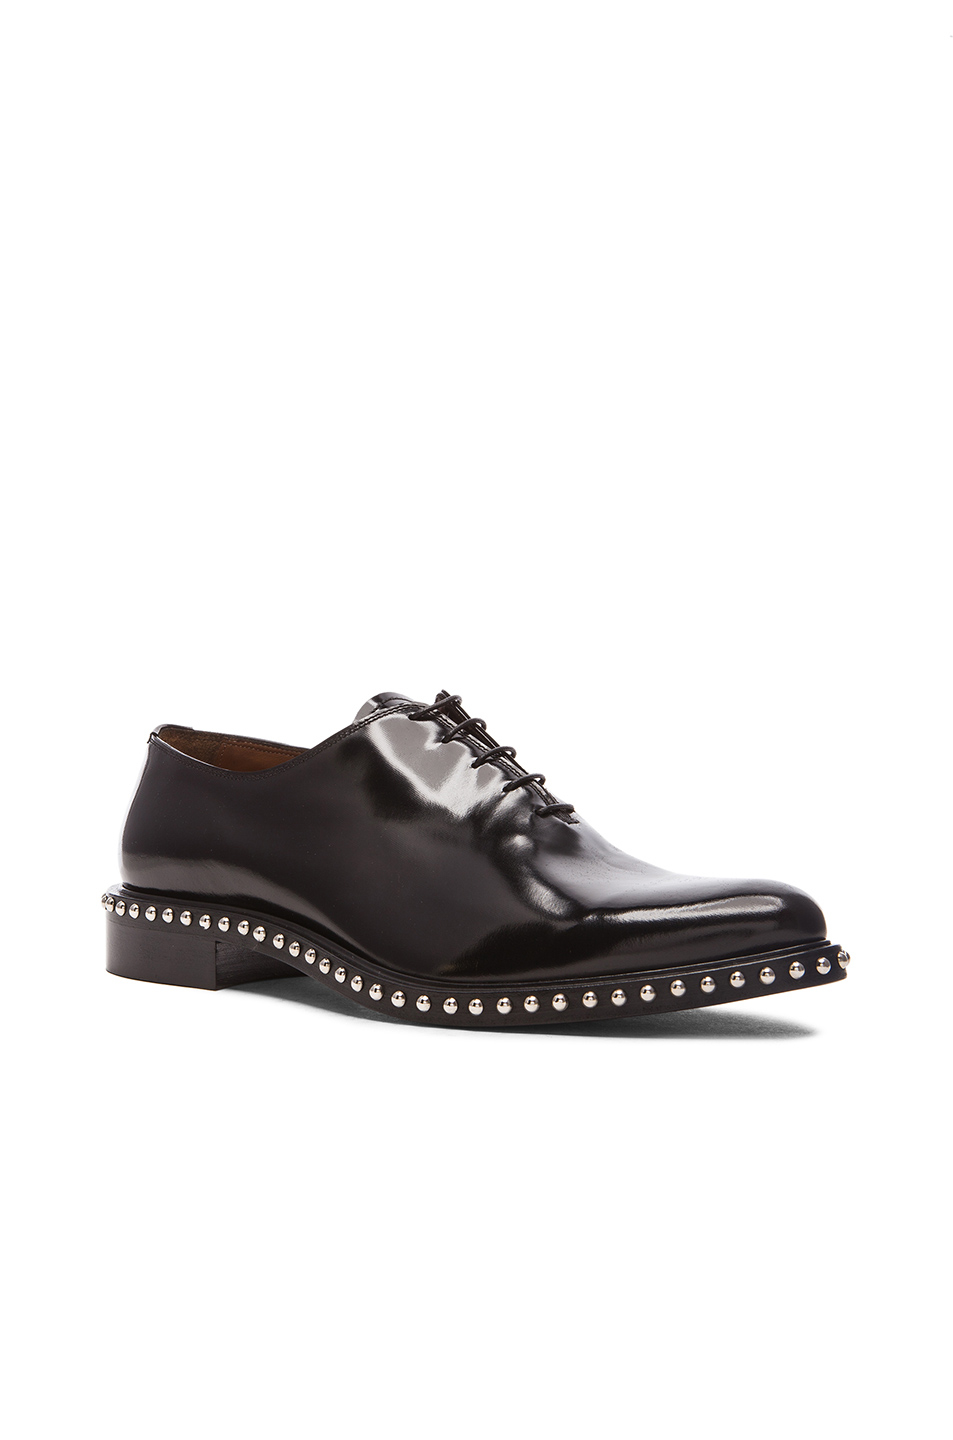 givenchy richel studded leather dress shoes in black lyst